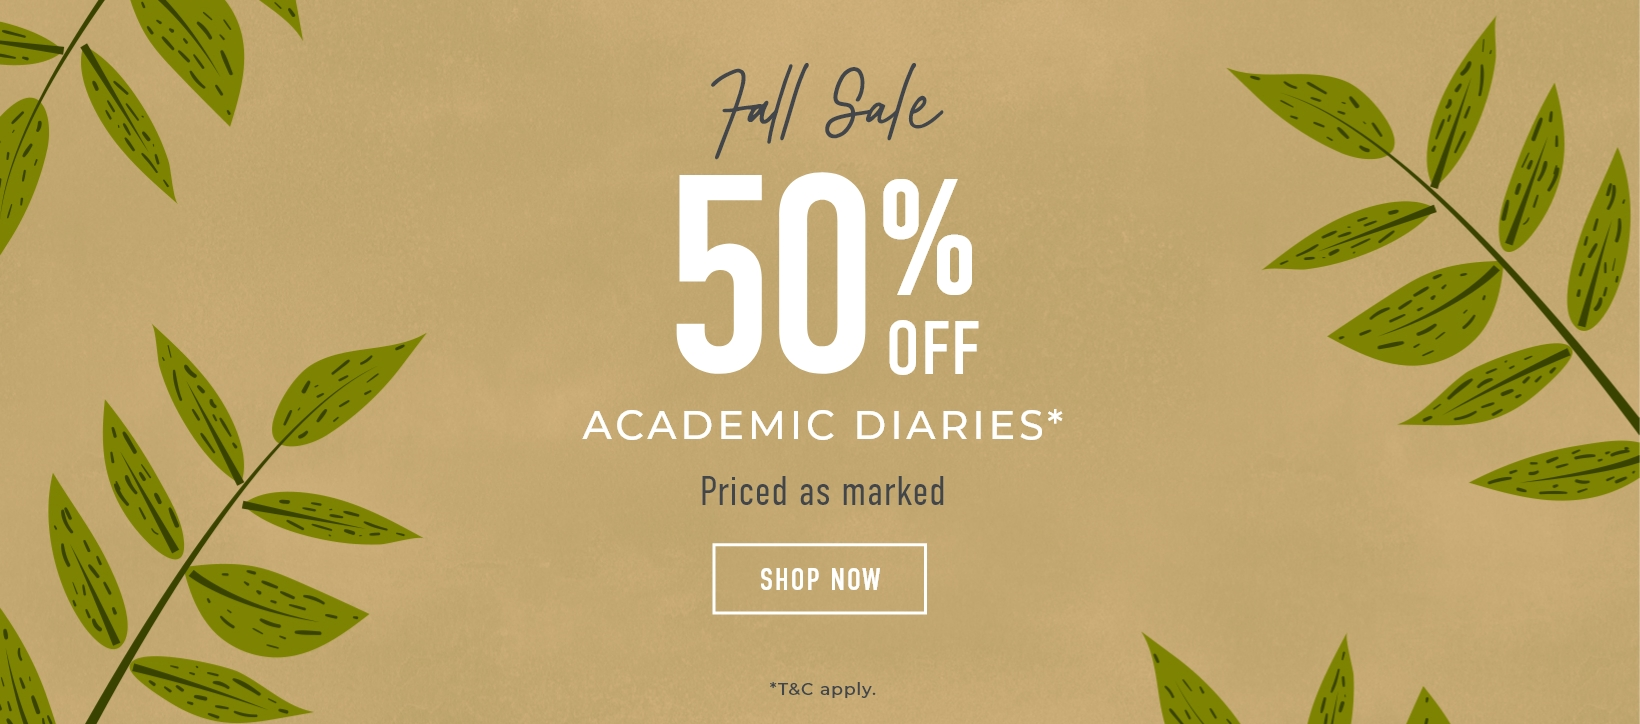 50% off Academic Diaries / Priced as marked